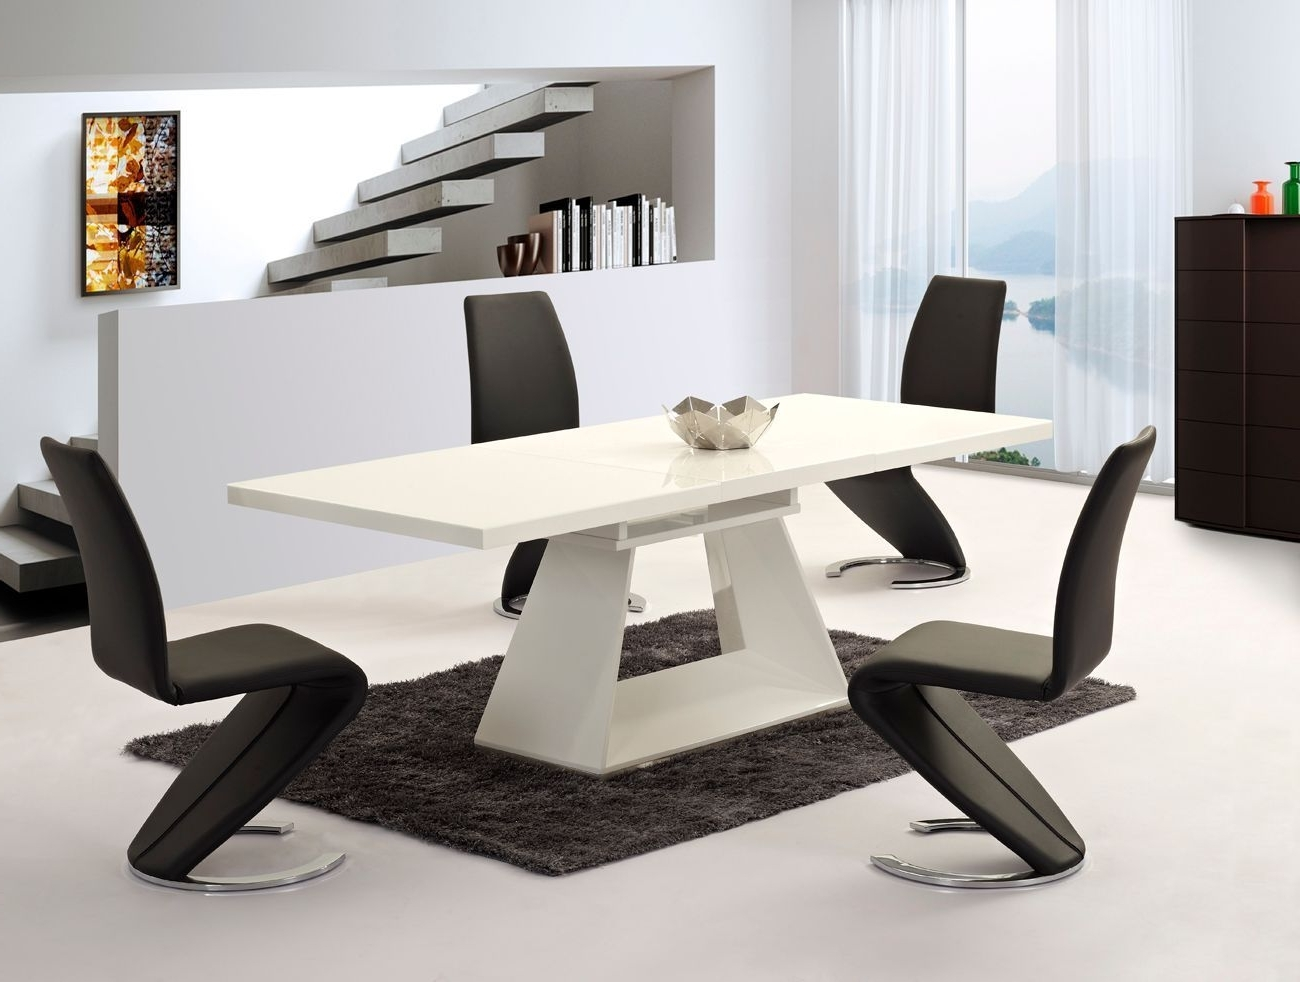 Black Extendable Dining Tables Sets With Regard To 2017 21 Extending Dining Table Sets Uk, Salou Small Extending Dining (Gallery 5 of 25)